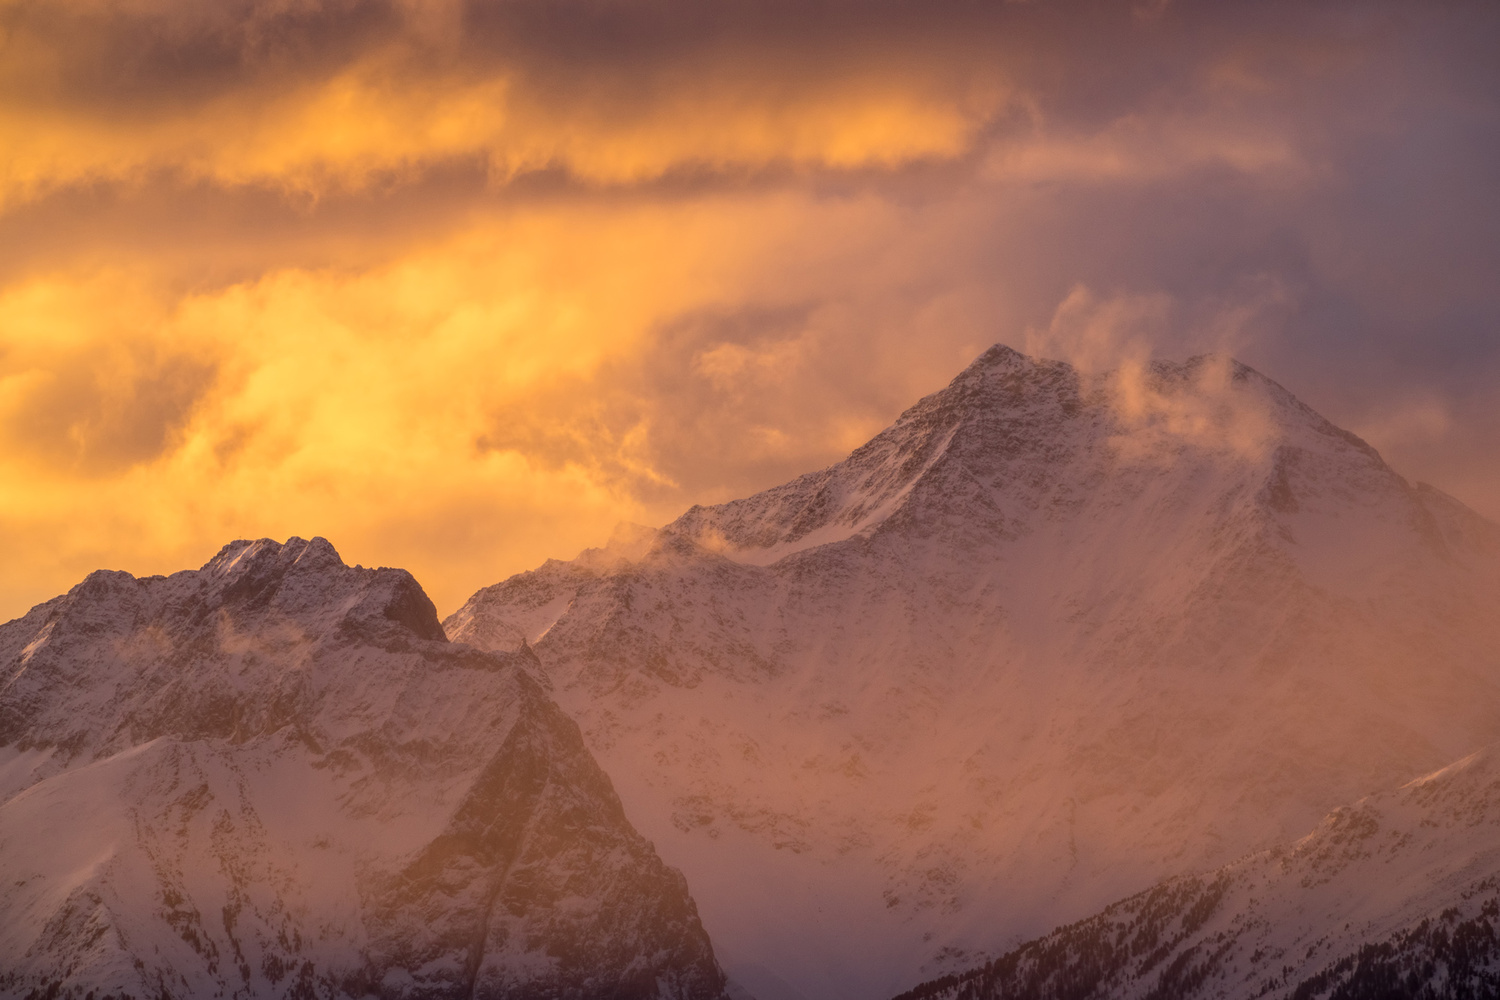 burning mountains by Otto Schlemmer